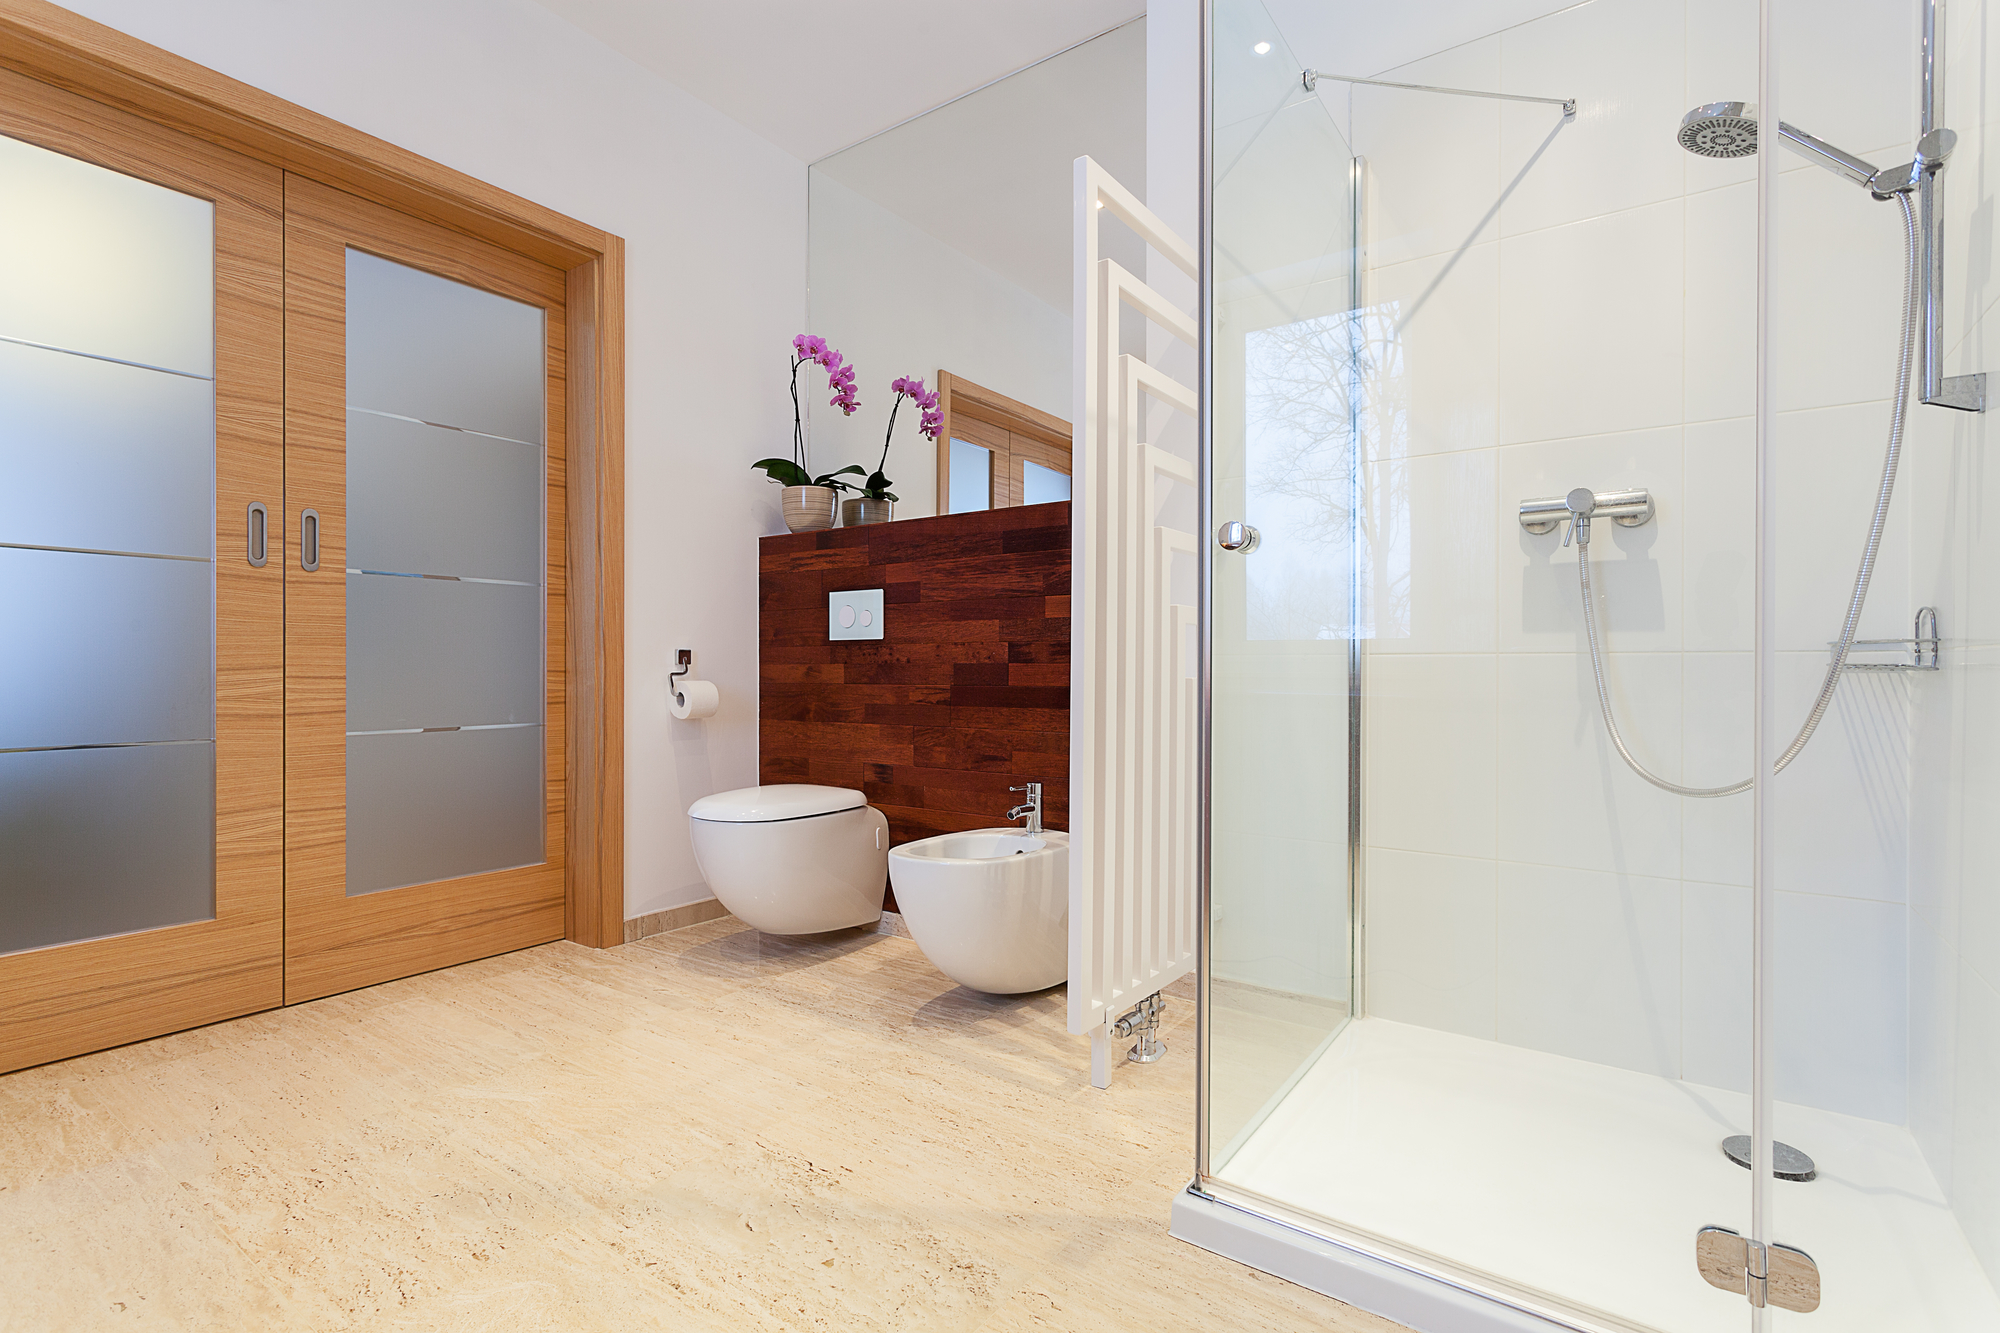 Glass Shower Curtains Top 3 Reasons To Choose Shower Glass Doors Over Curtains Genesee